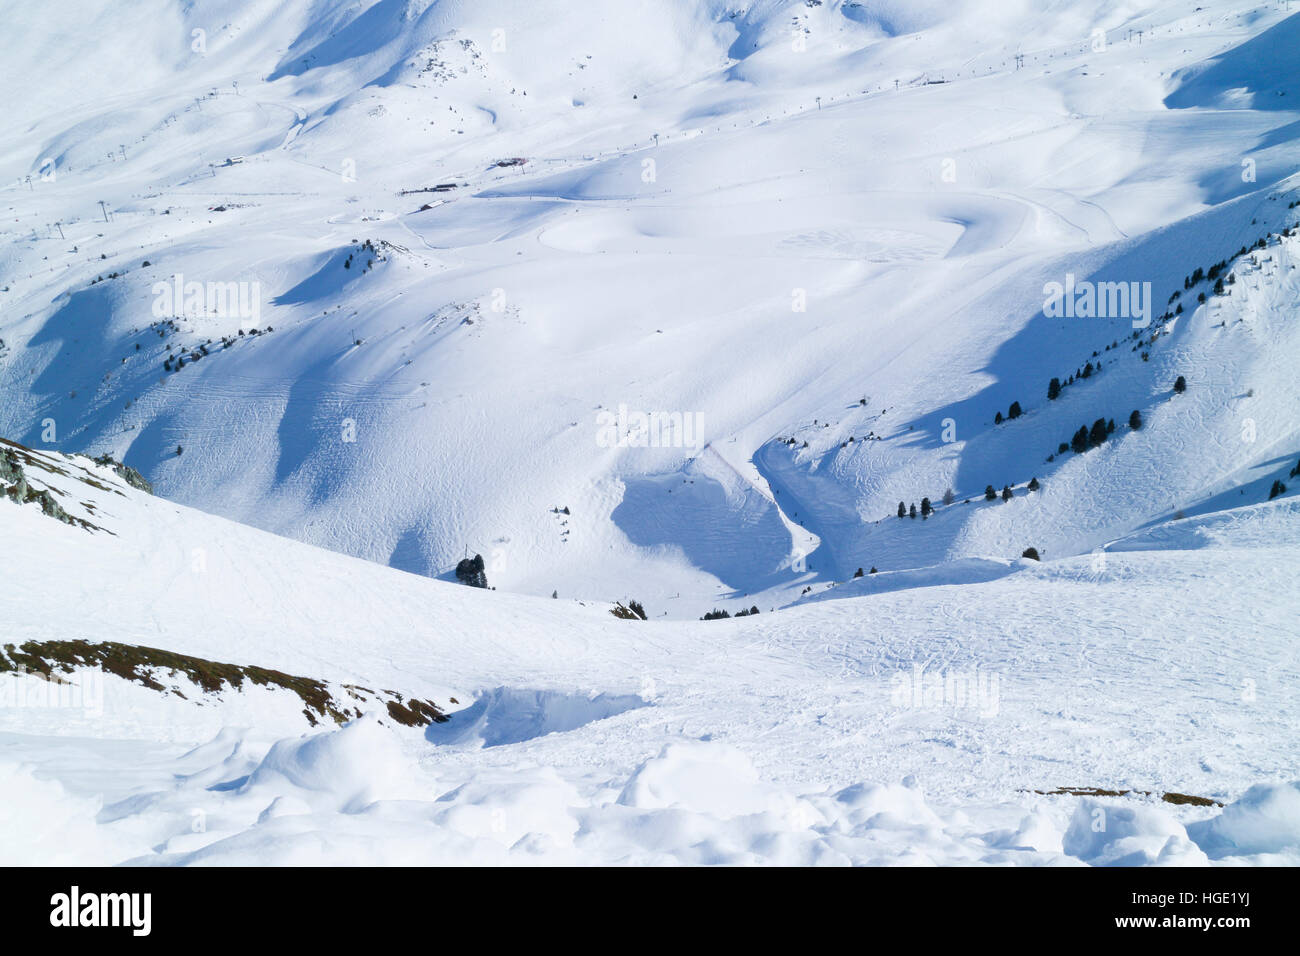 Snowy mountain valley crisscrossed by ski tracks on groomed slopes and off piste - Stock Image